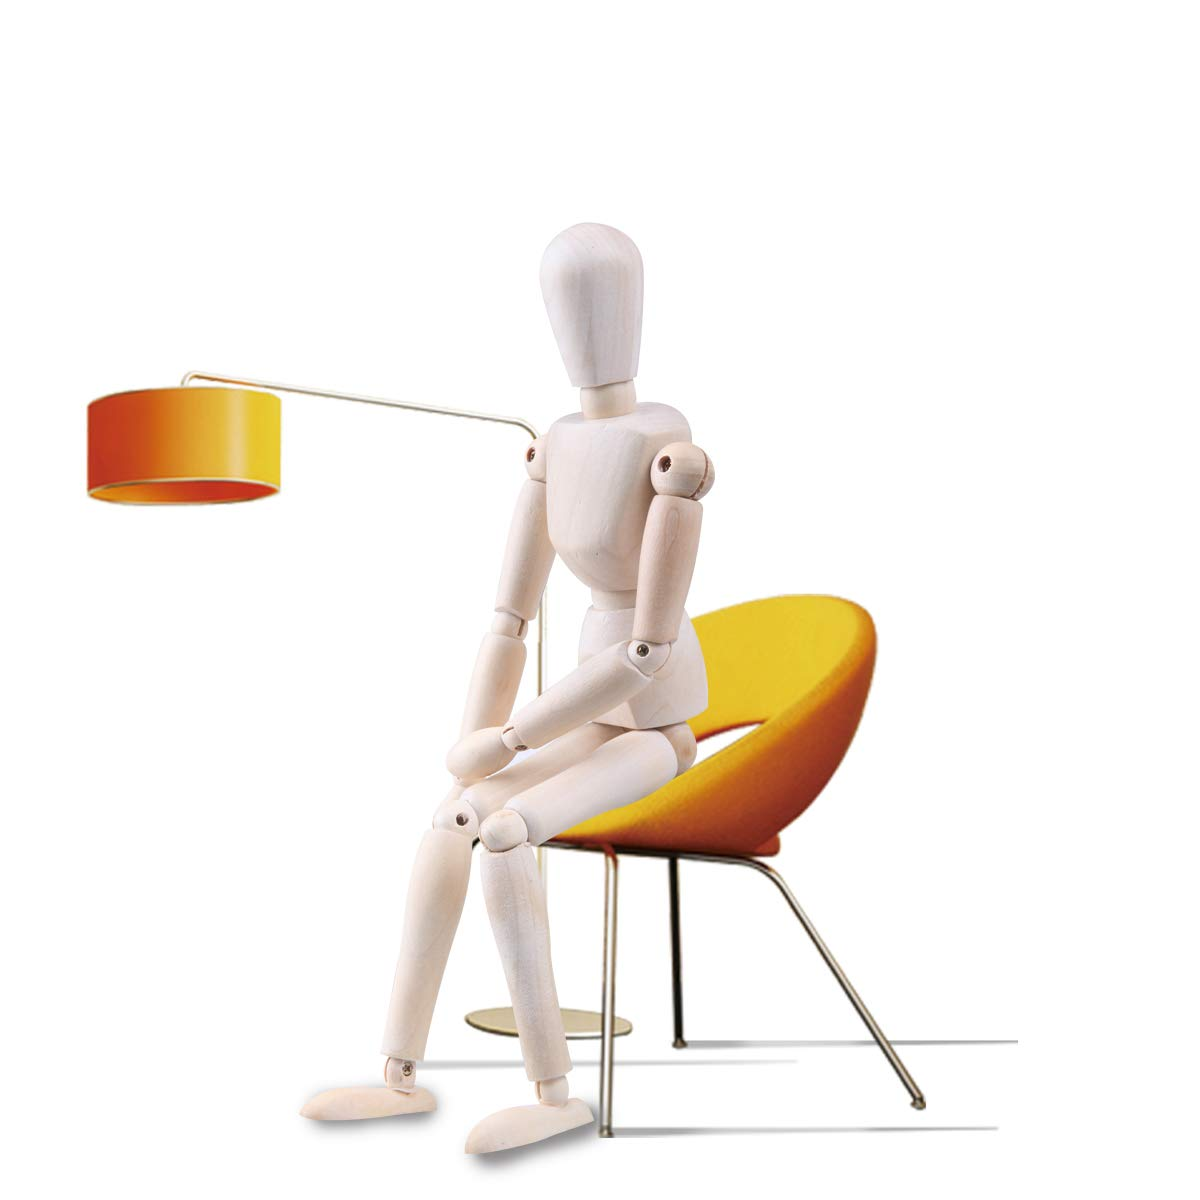 Moi Doi Wooden Mannequin, Wood Manikin with Stand, Artist Human Figure Articulated Model,Great for Drawing/Sketch or Desktop Decor,12 Inch Tall by Moi Doi